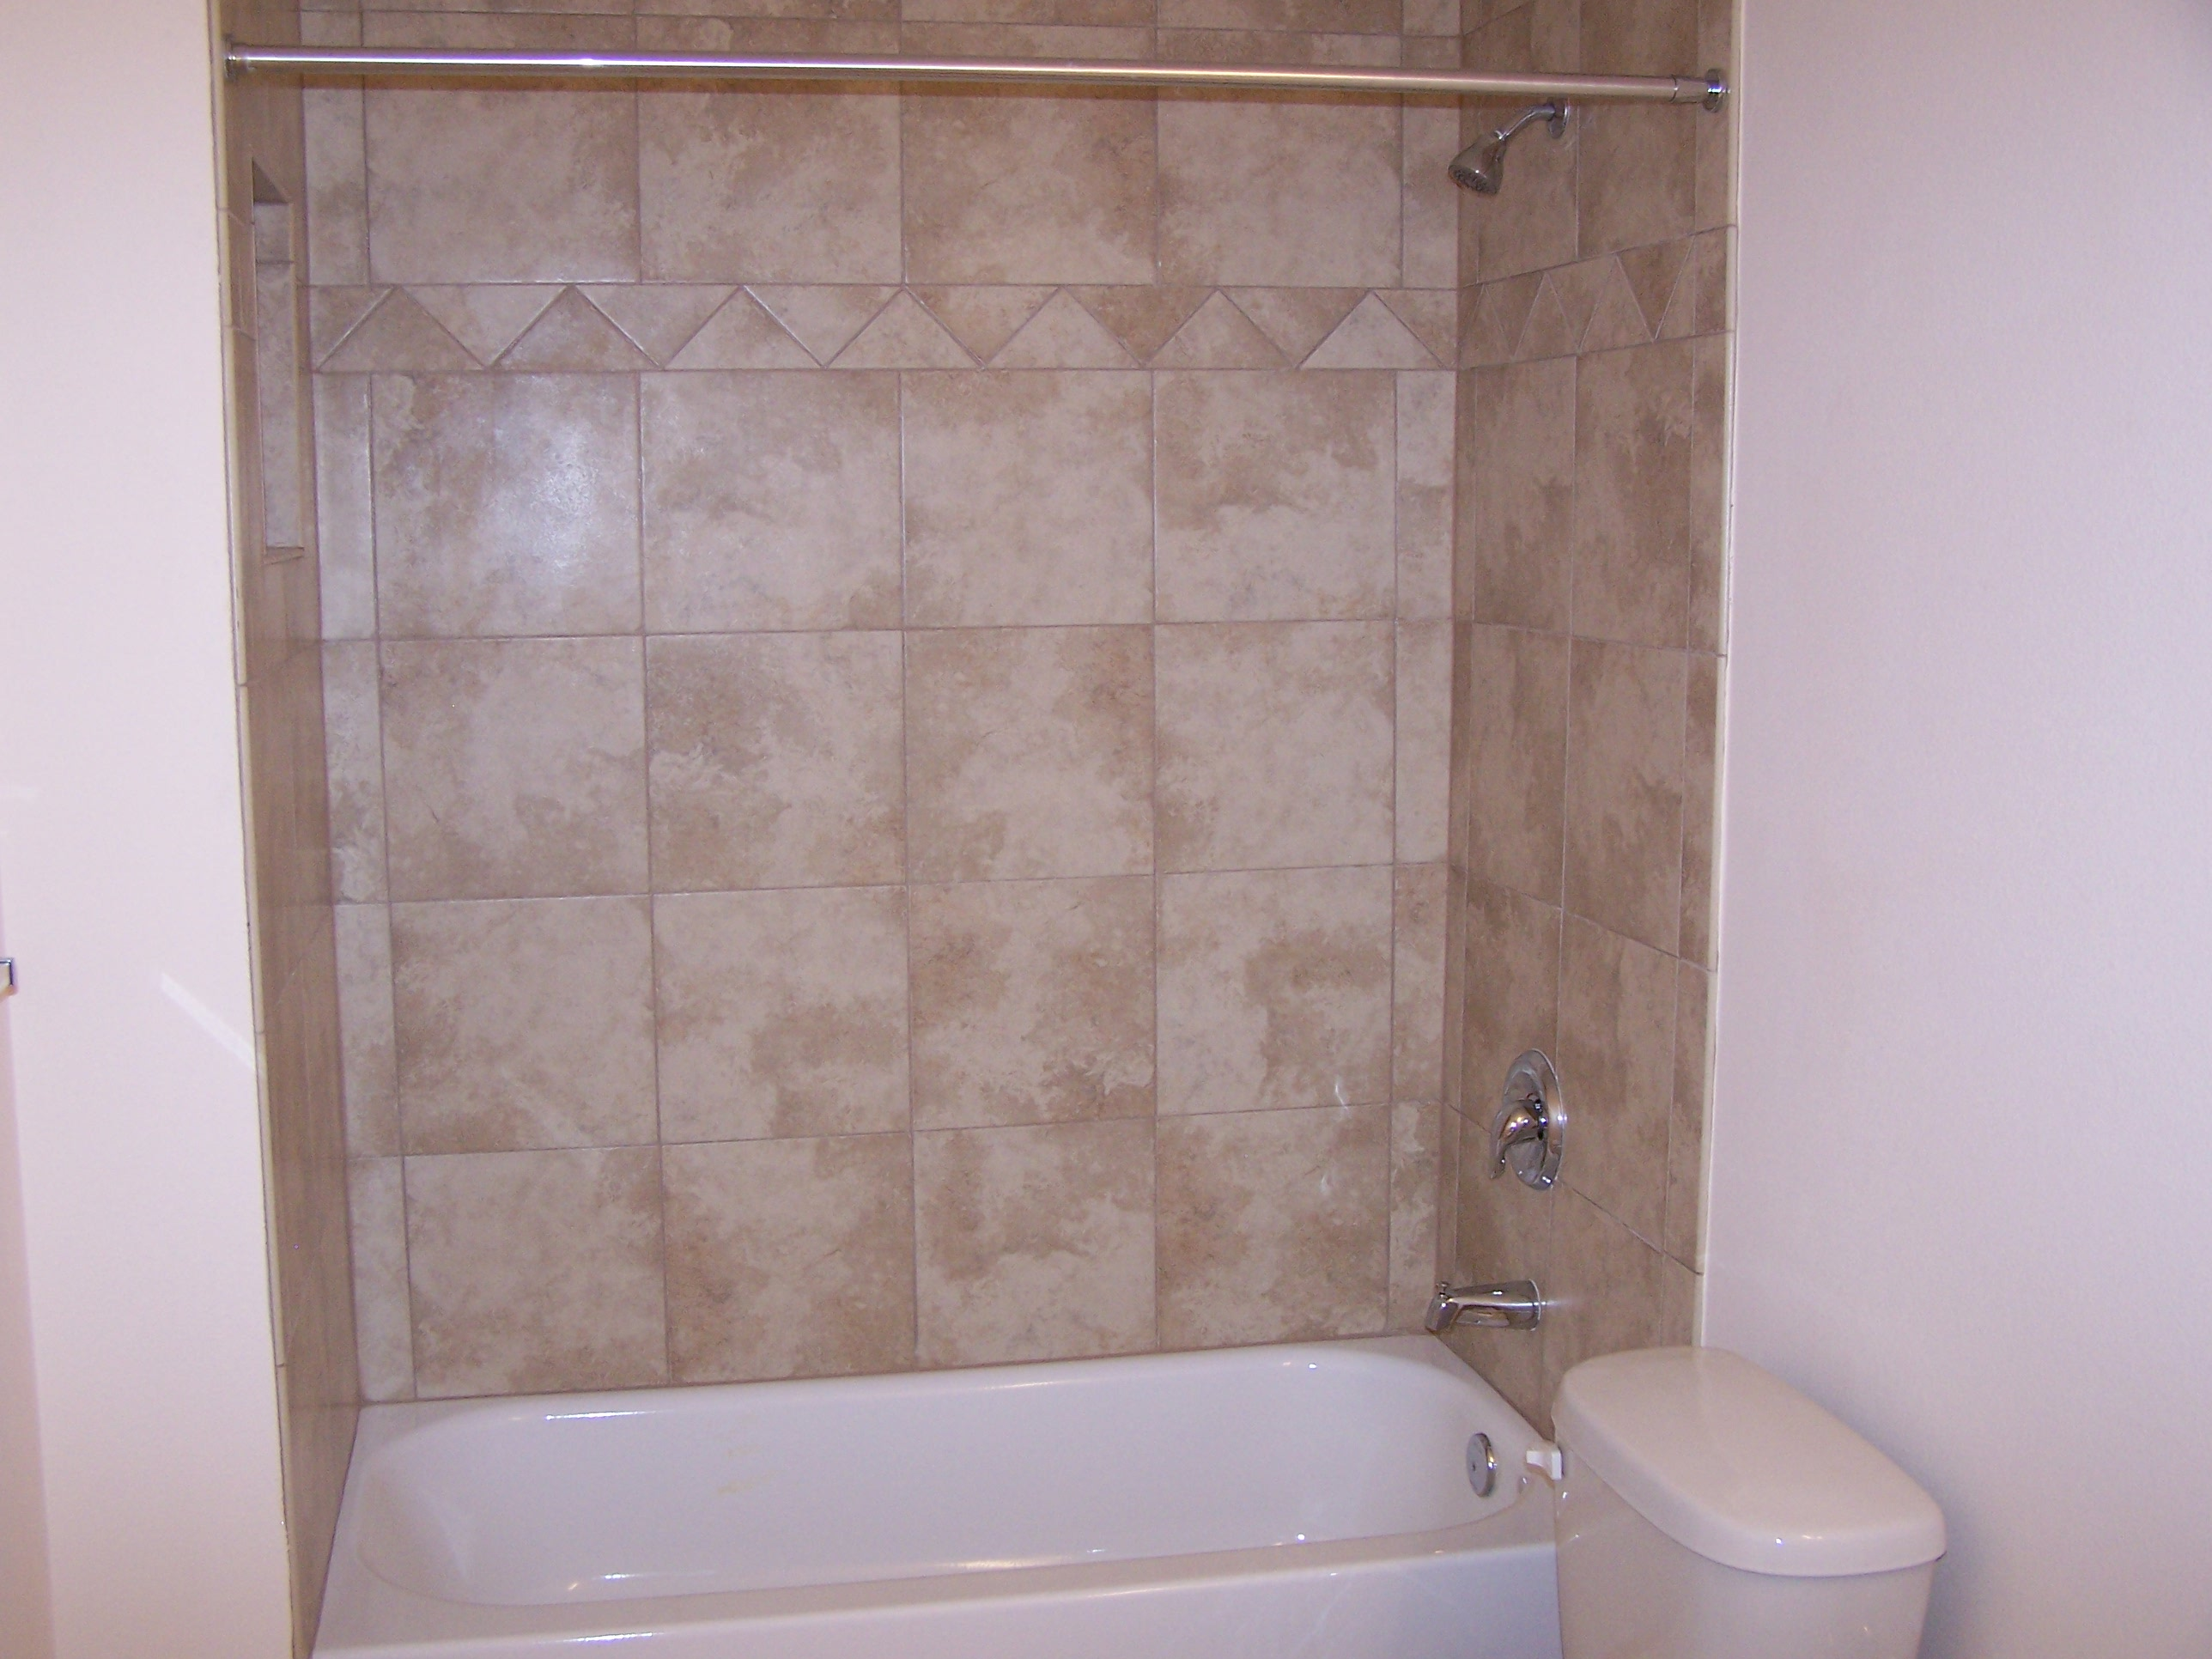 Ceramic Tile Bathroom Wall Ideas Part - 39: ... Ceramic-tile-decorative-bath-enclosure ...